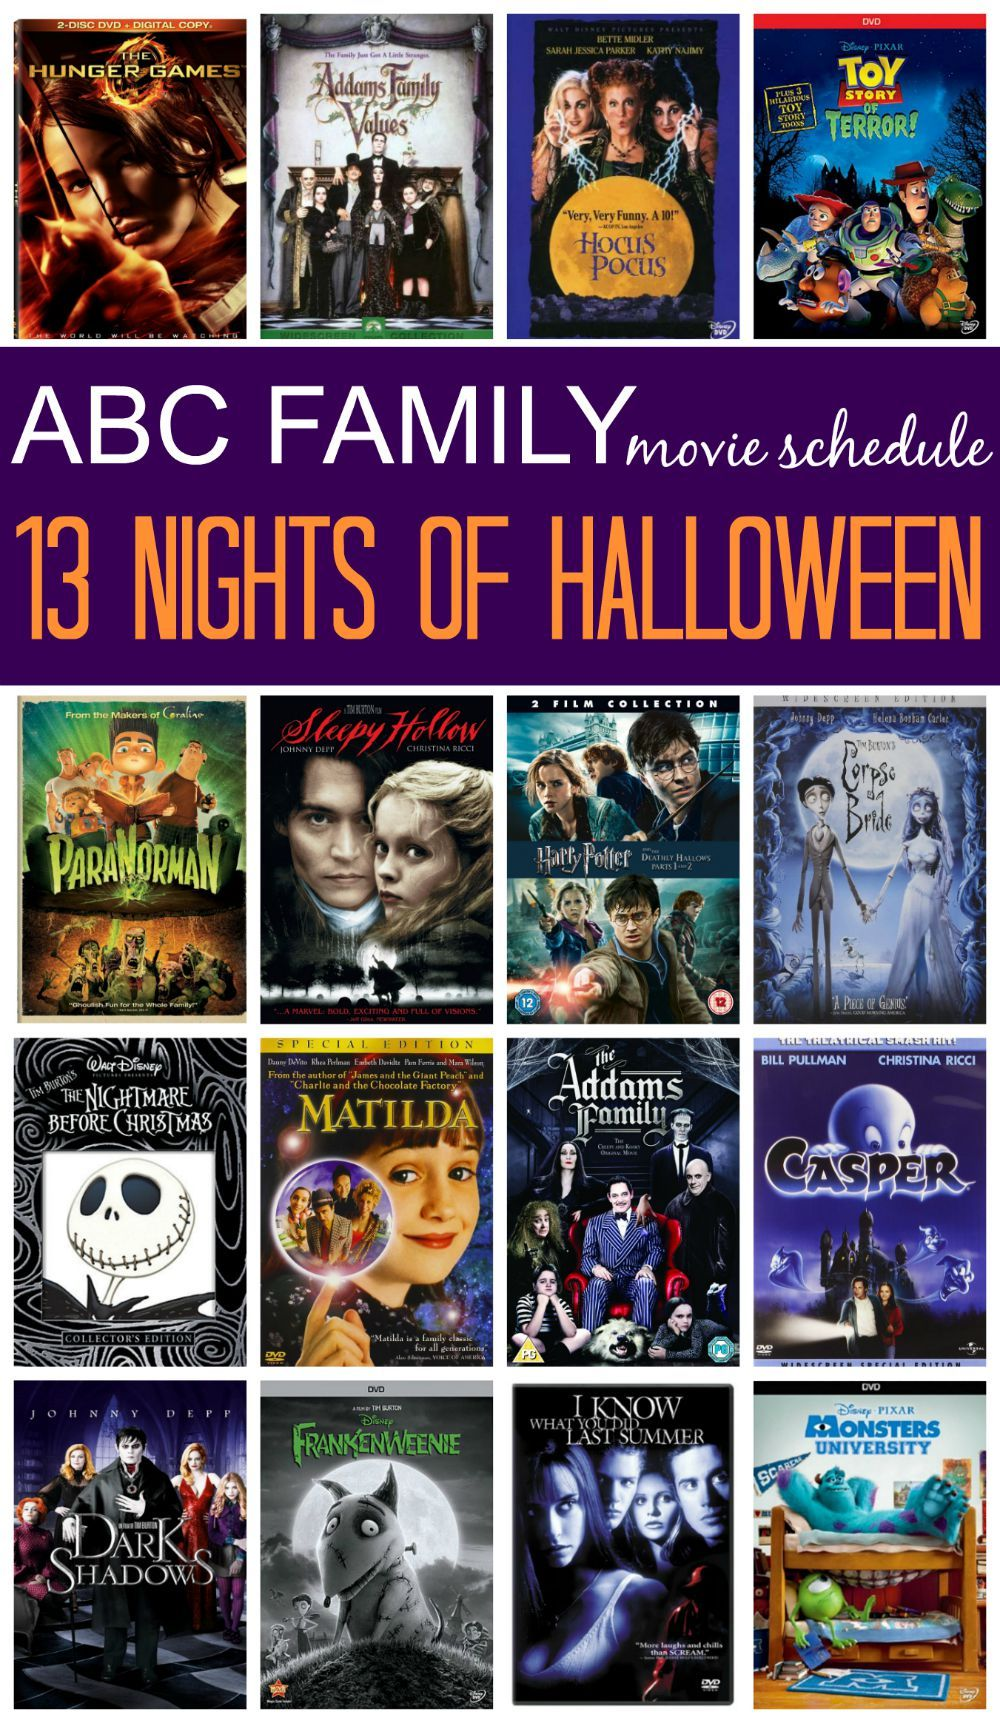 2015 abc family 13 nights of halloween movie schedule - 13 Night Of Halloween